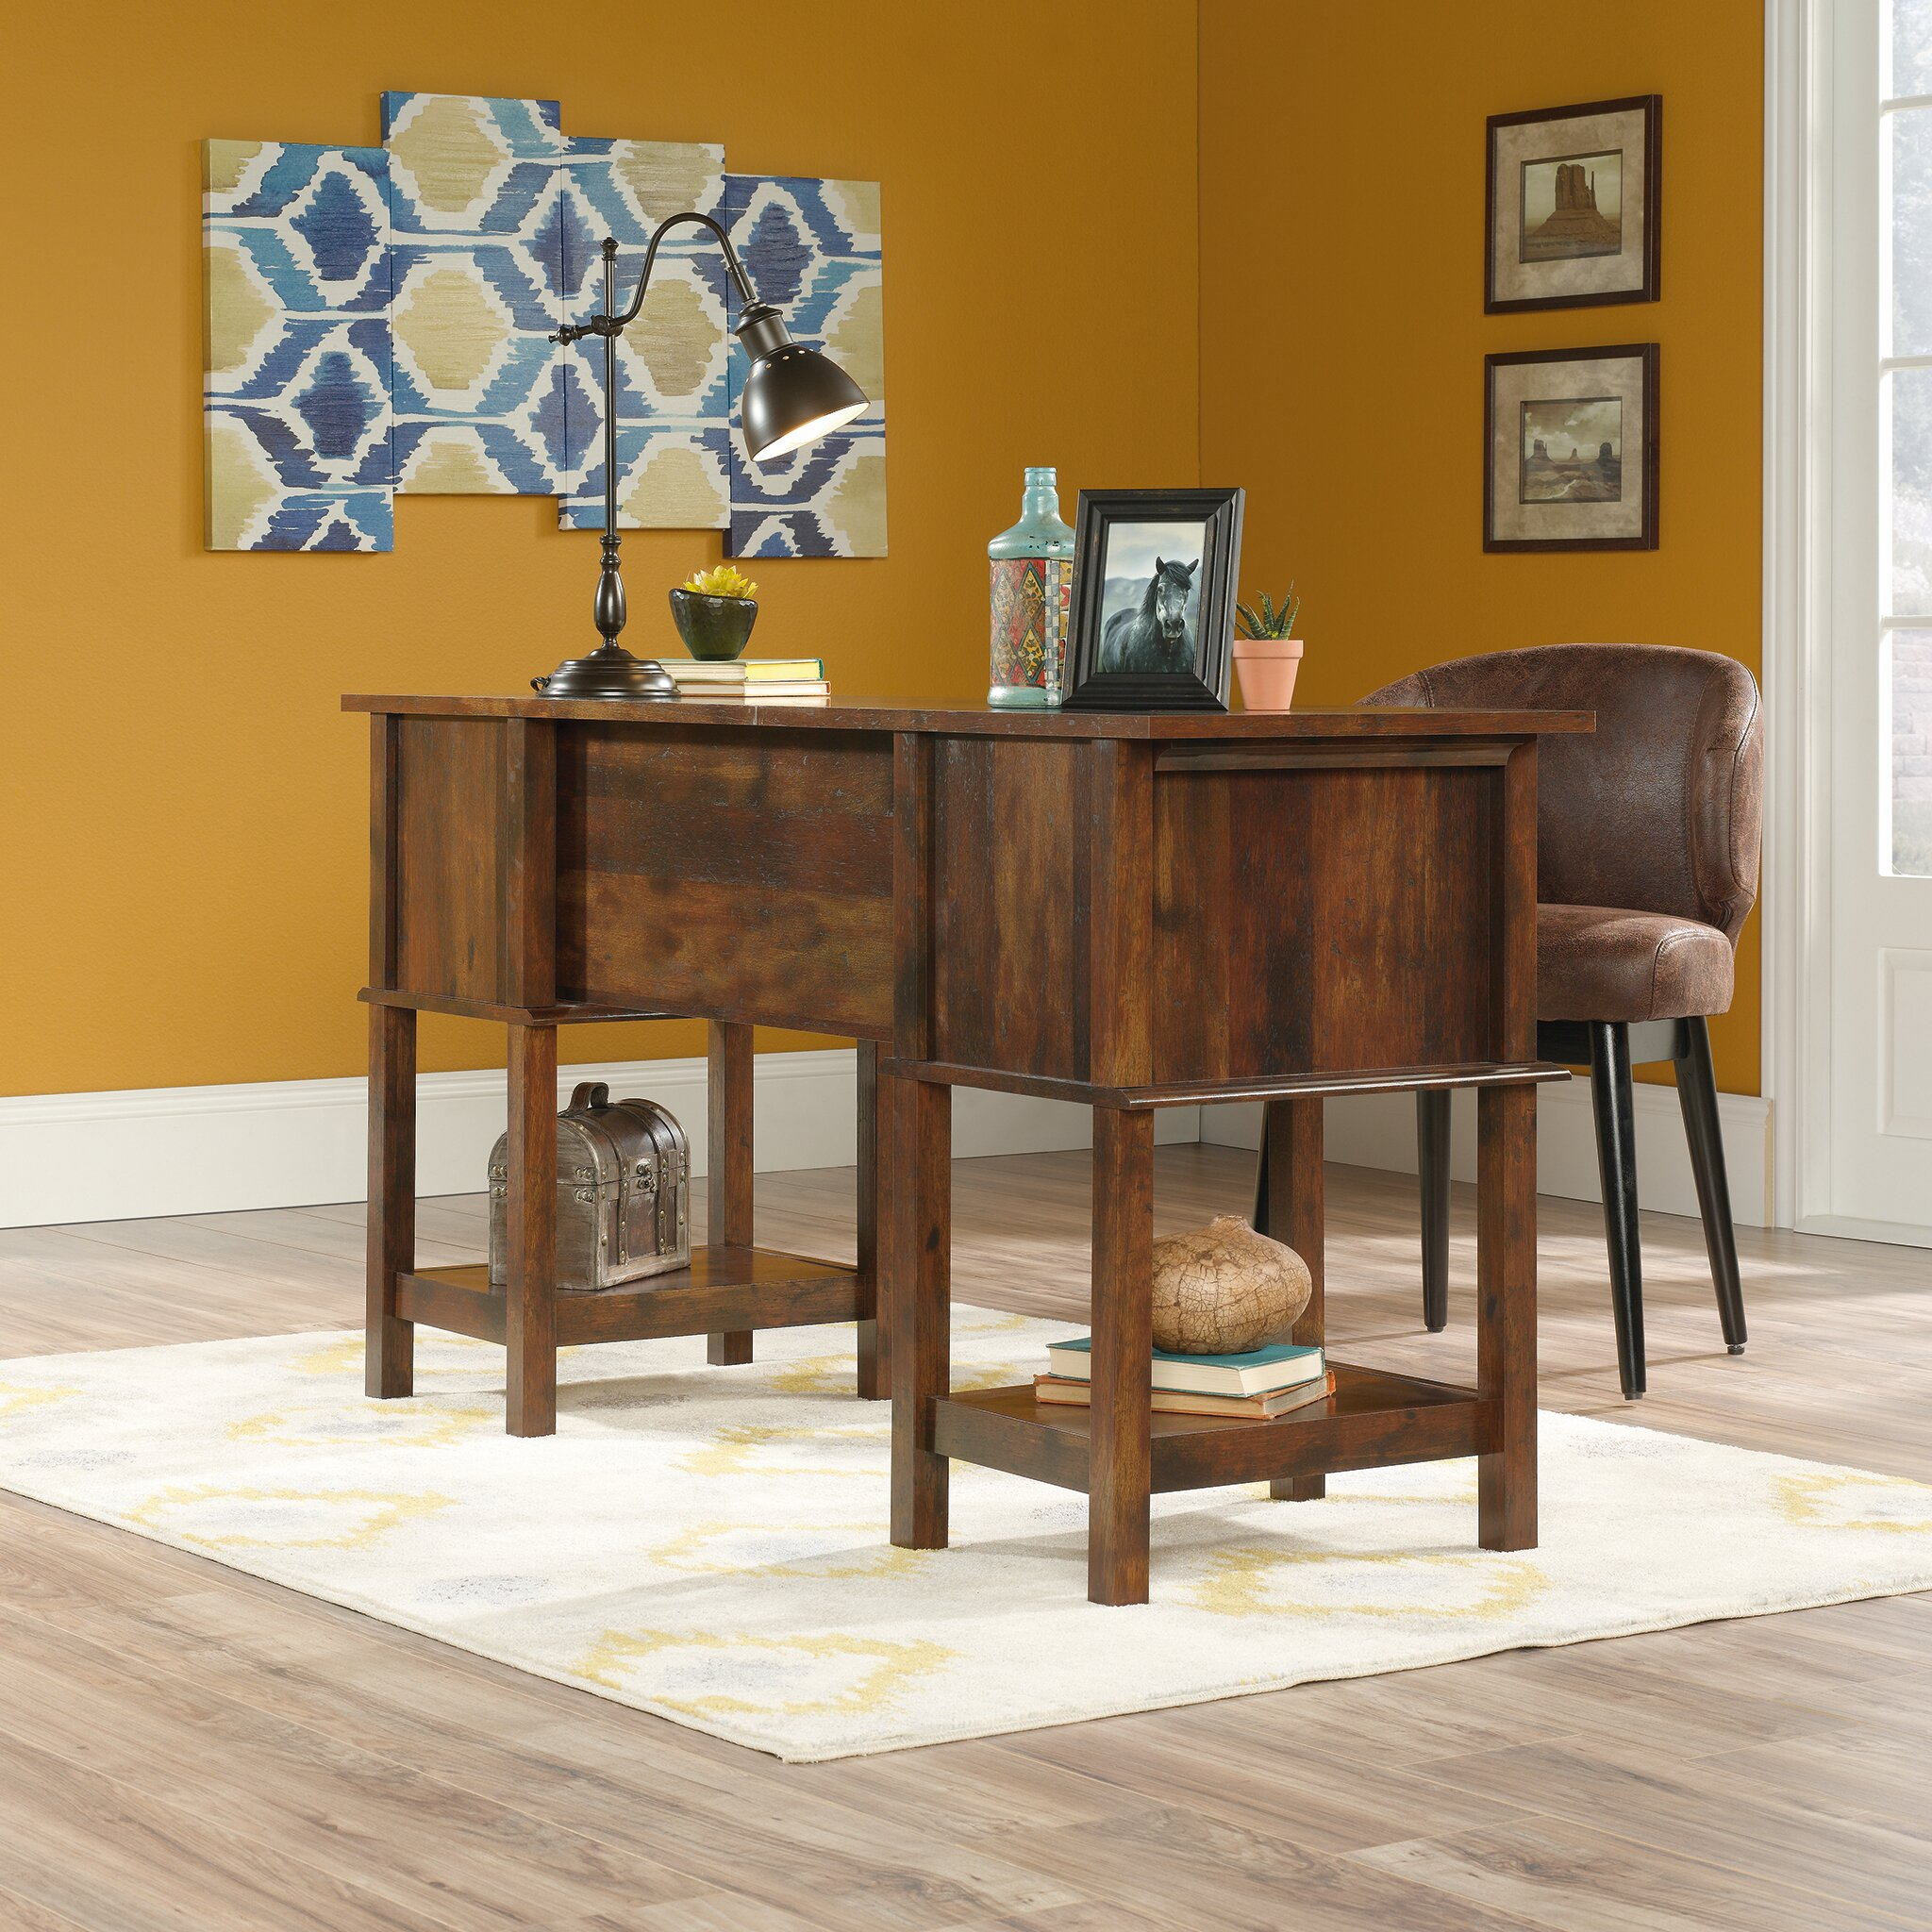 roses office furniture